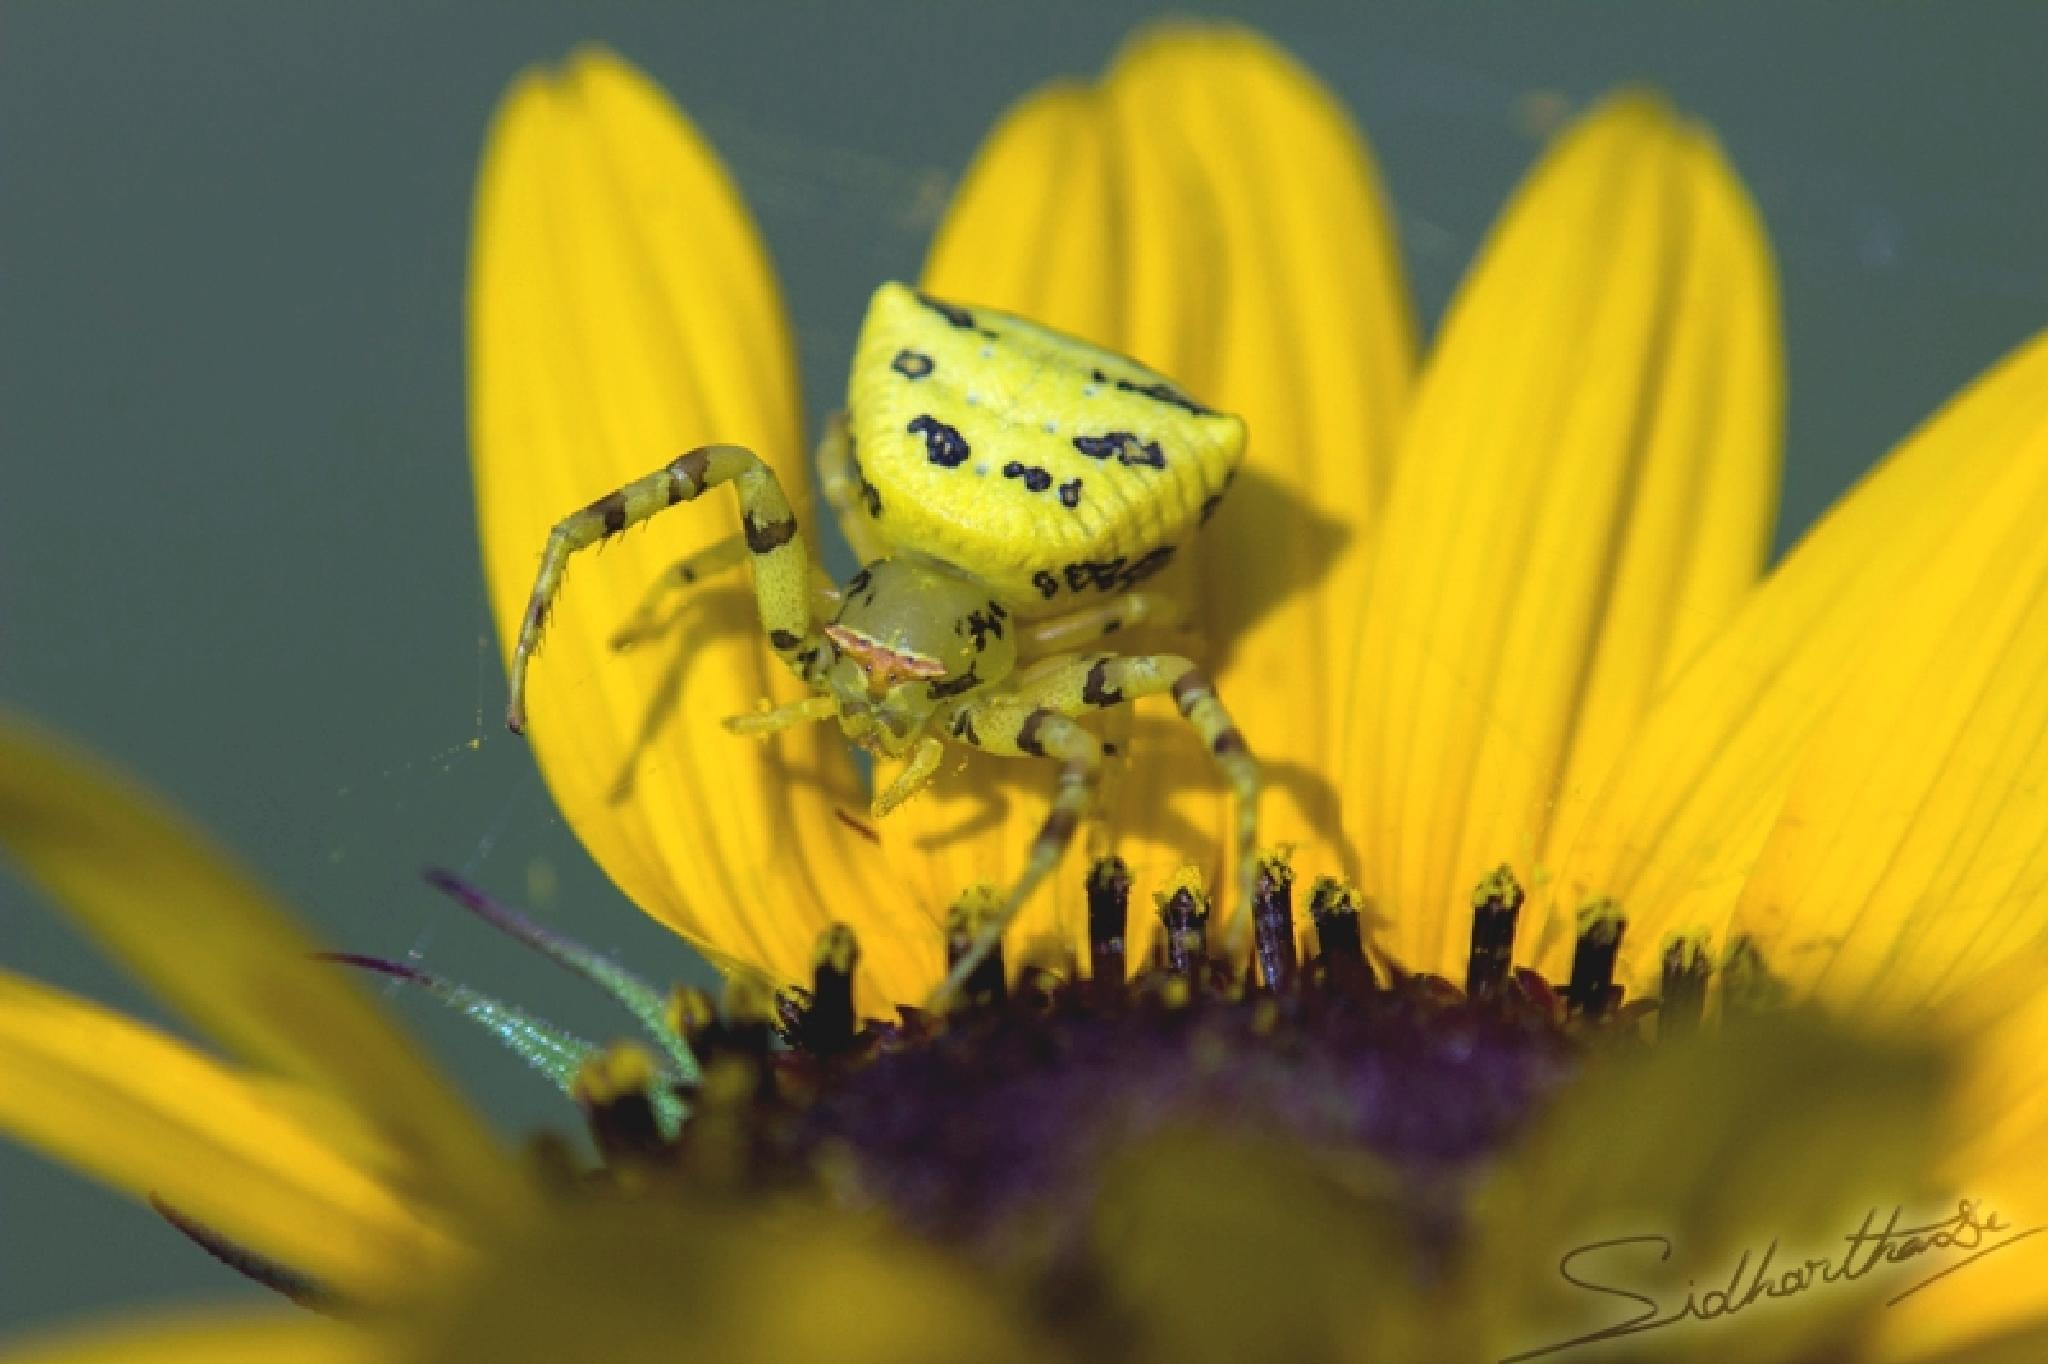 Flower Crab Spider by Sidhartha De